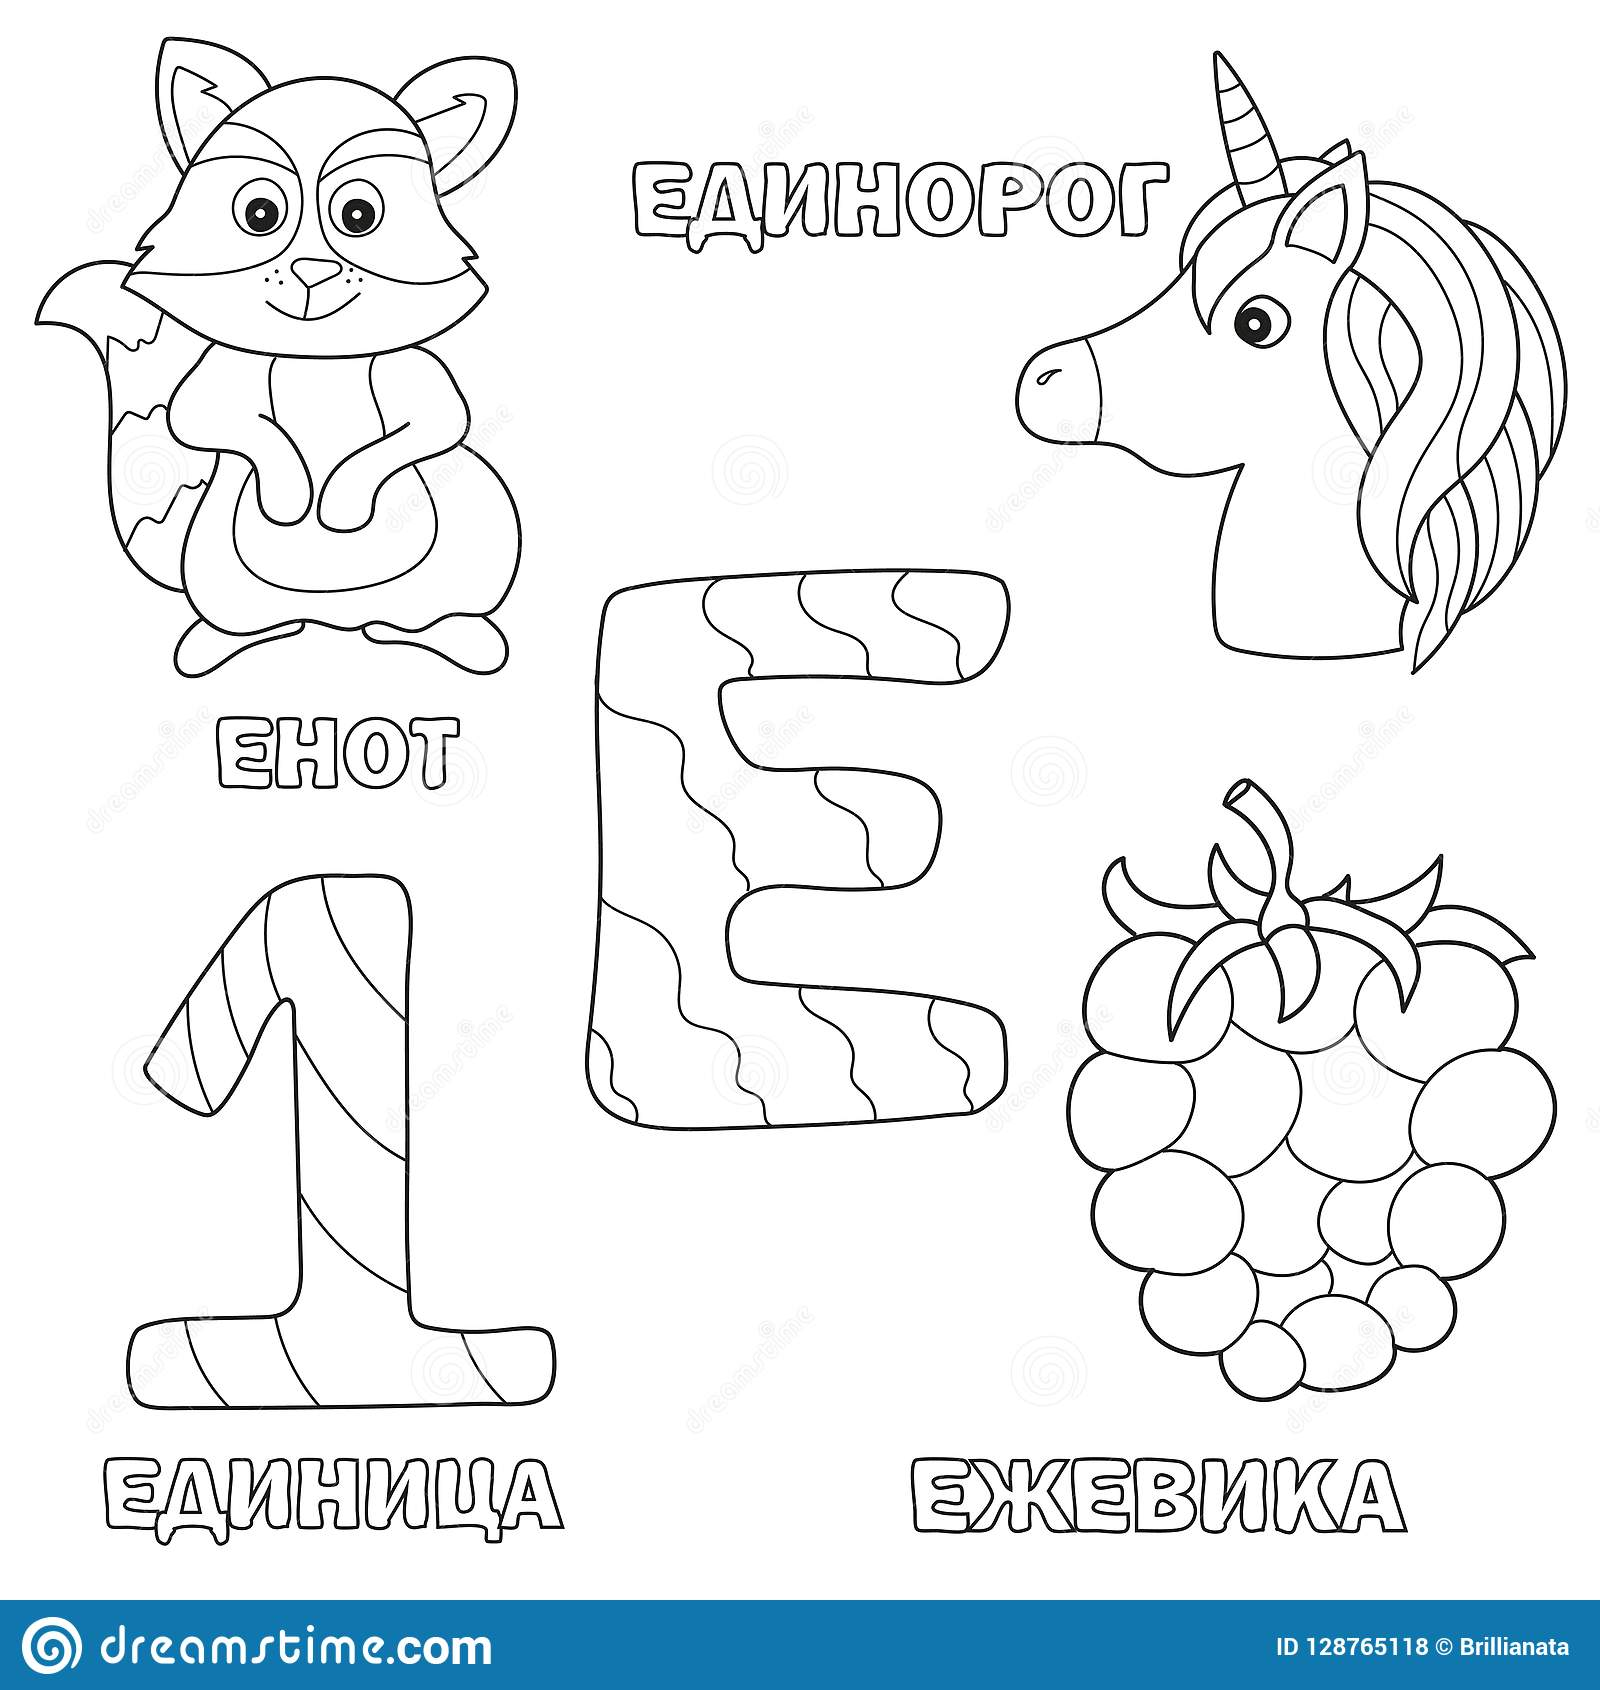 Alphabet letter with russian E. pictures of the letter - coloring book for kids